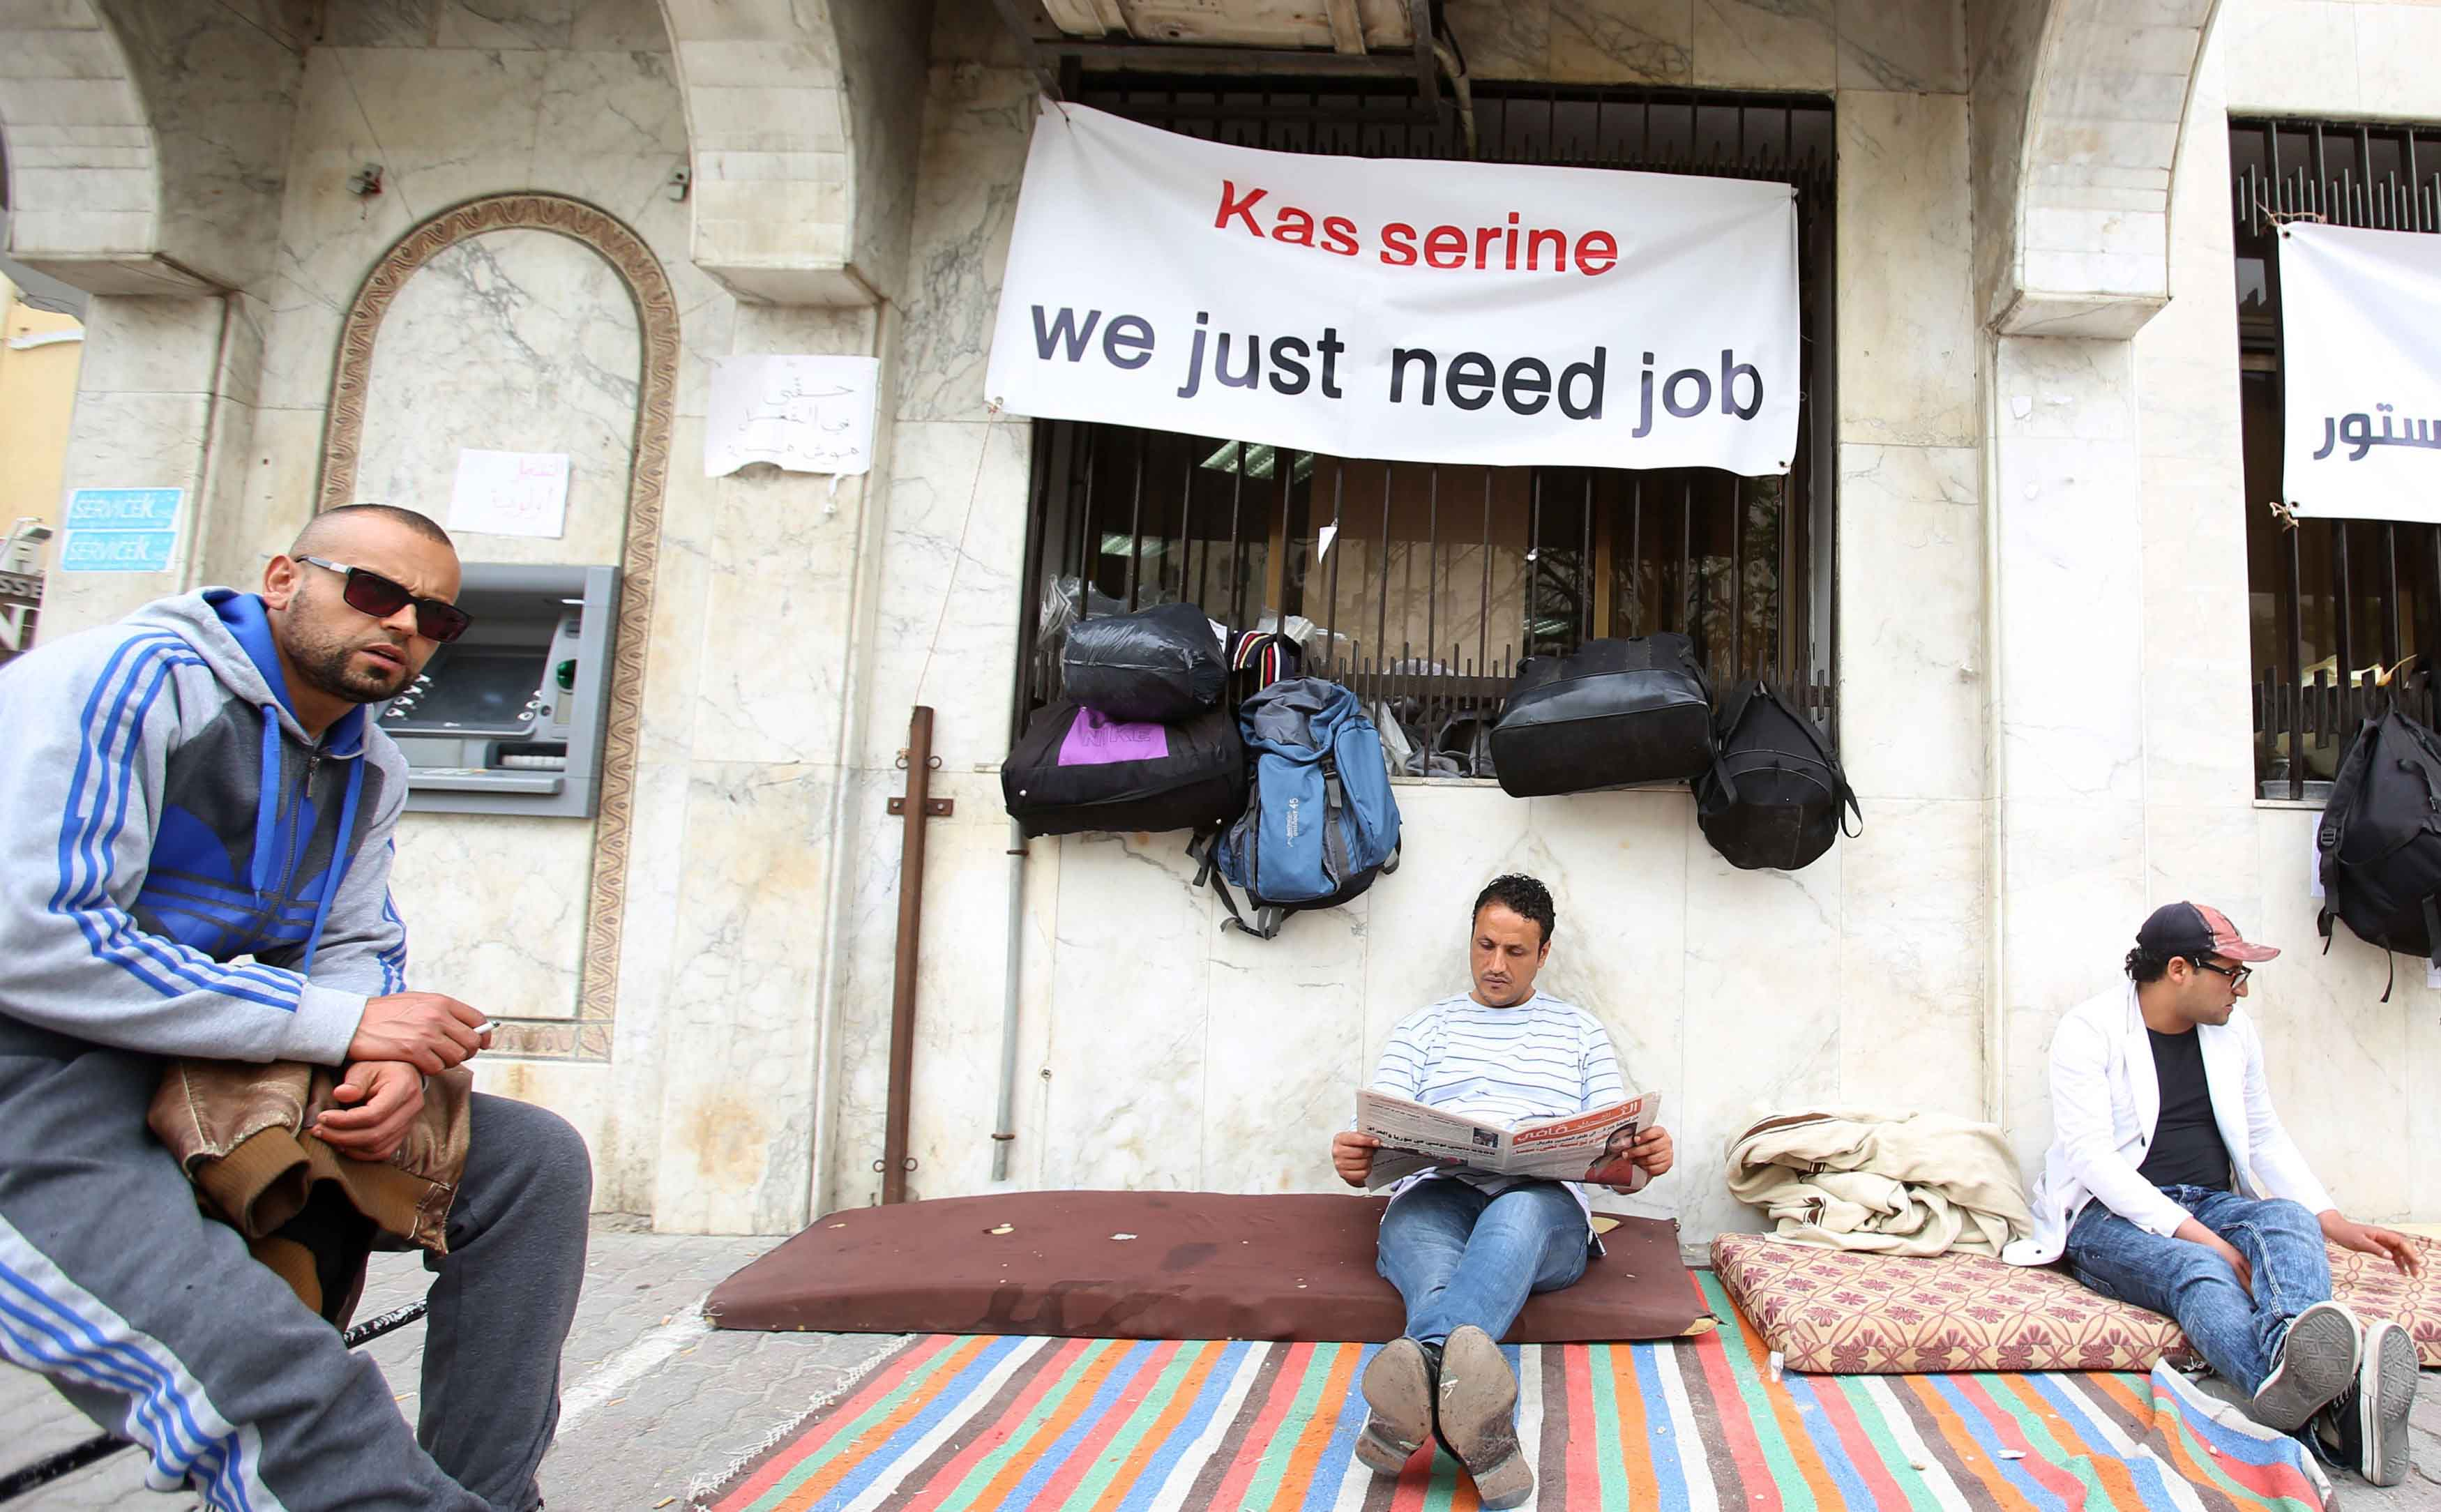 A Tunisian unemployed graduate from the city of Kasserine reads a newspaper as he takes part in a sit-in protest in Tunis. (Reuters)